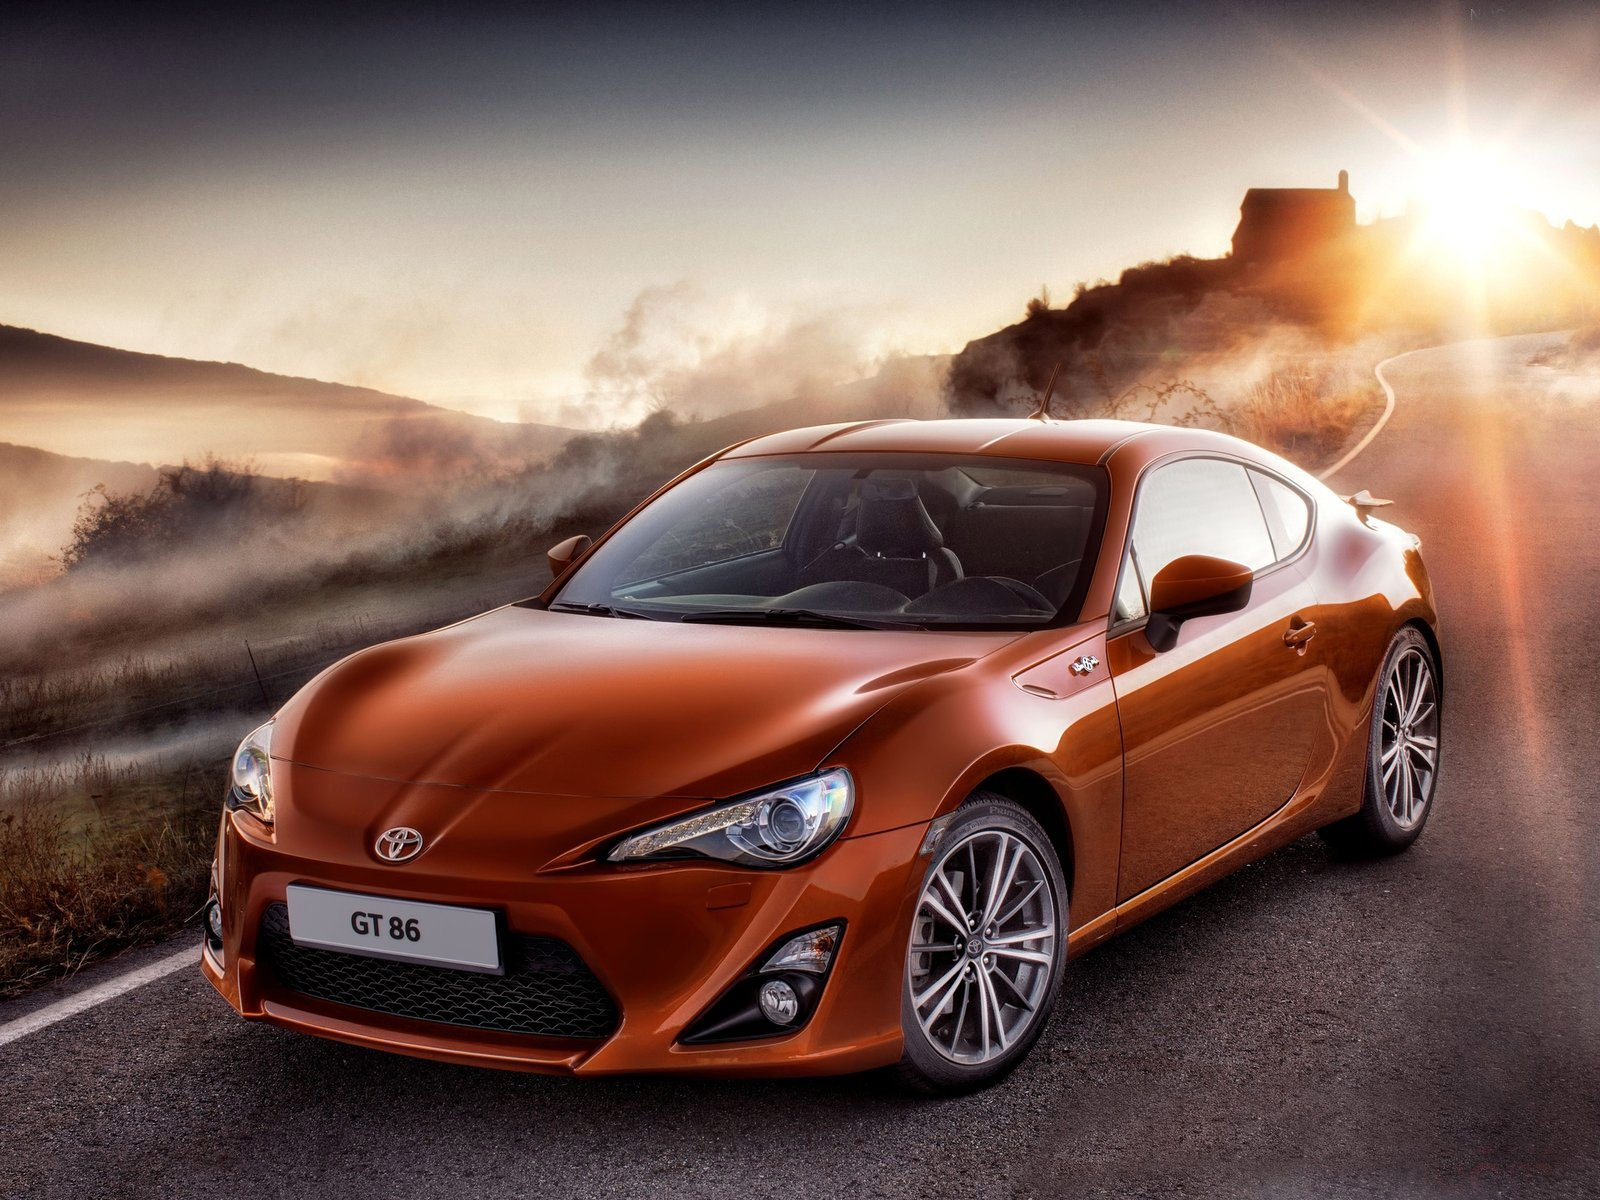 2013 TOYOTA GT 86 car pictures review 1600x1200